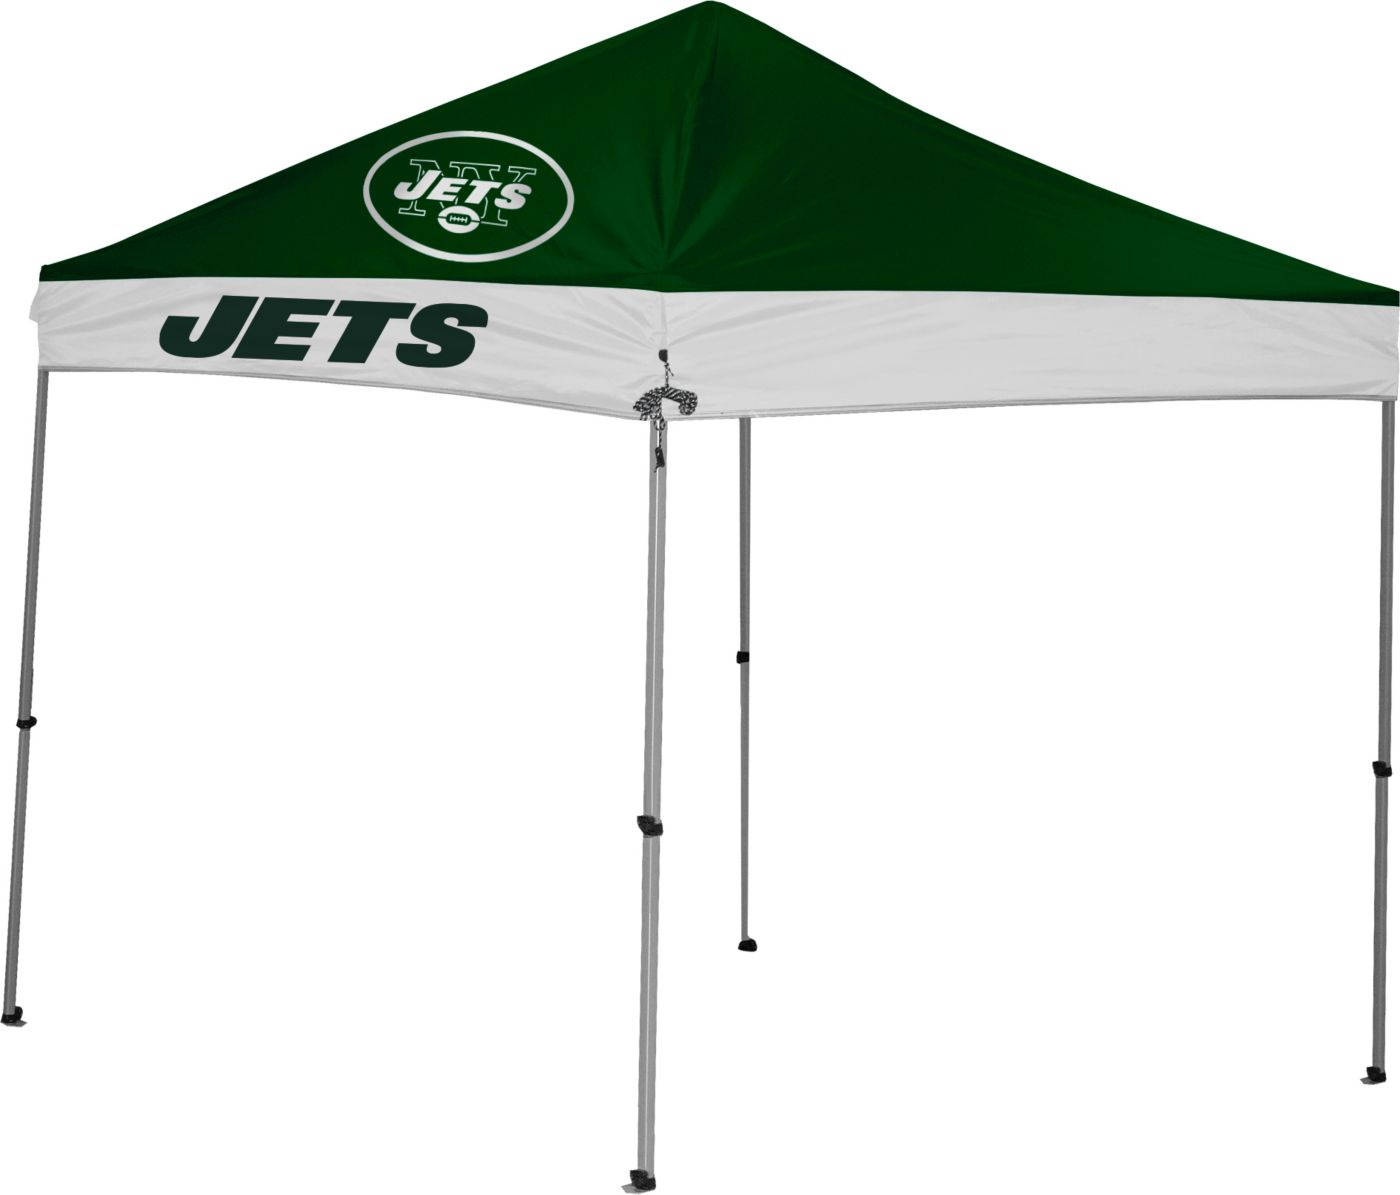 Rawlings New York Jets 9'x9' Canopy Tent